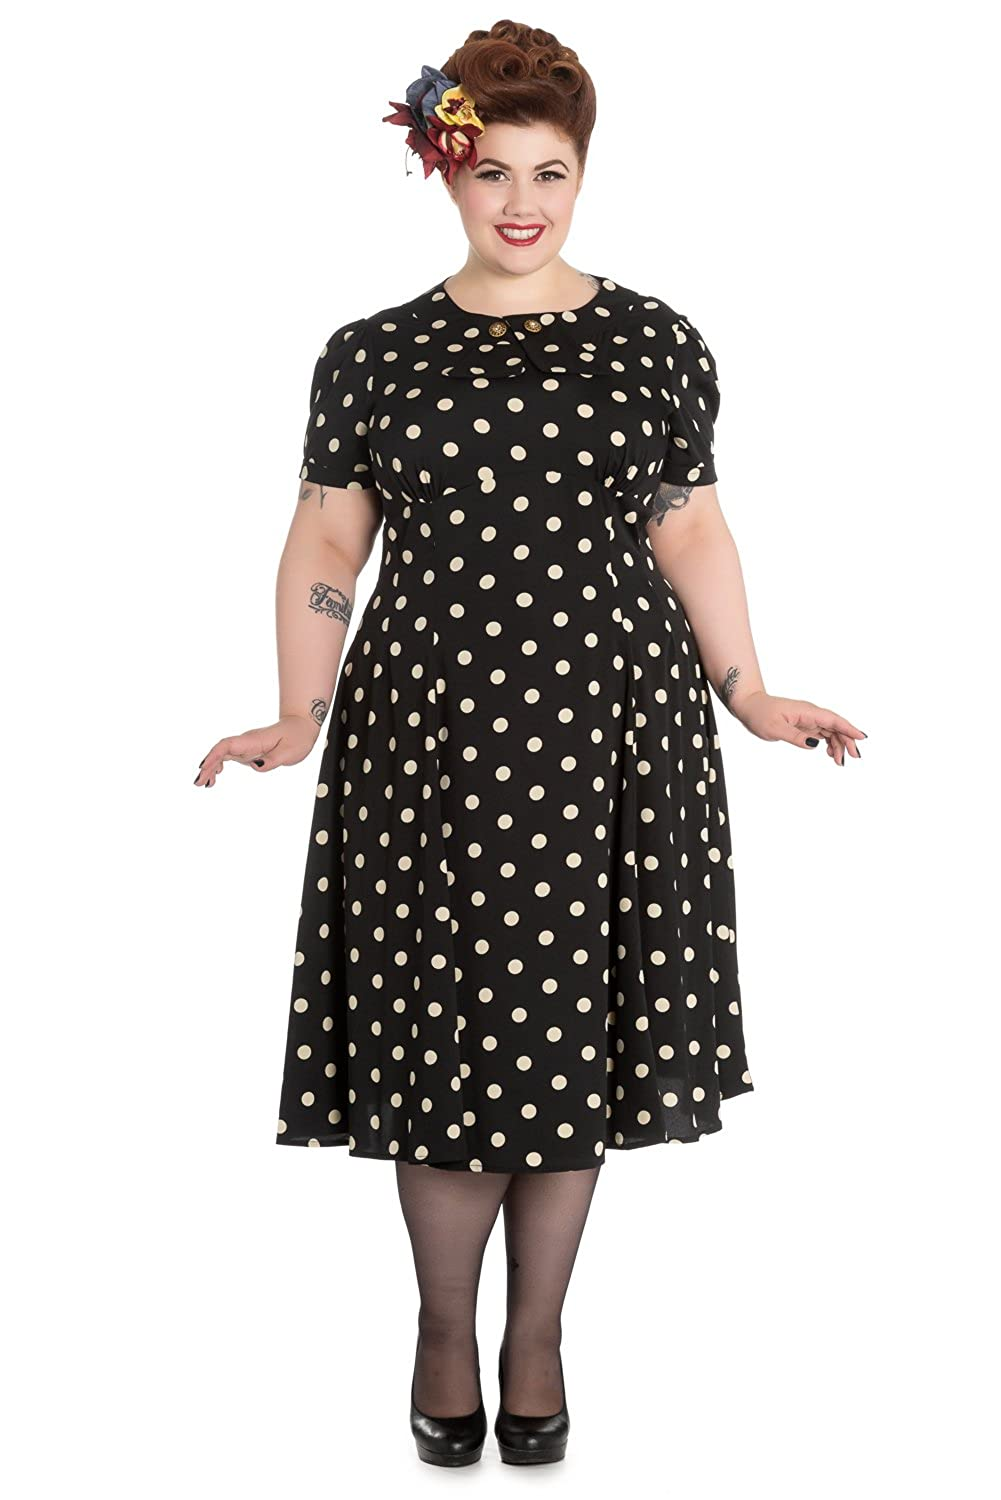 1950s Polka Dot Dresses Hell Bunny Plus Size Sweet Office Lady Black Mod Polka Dot Dress $72.00 AT vintagedancer.com